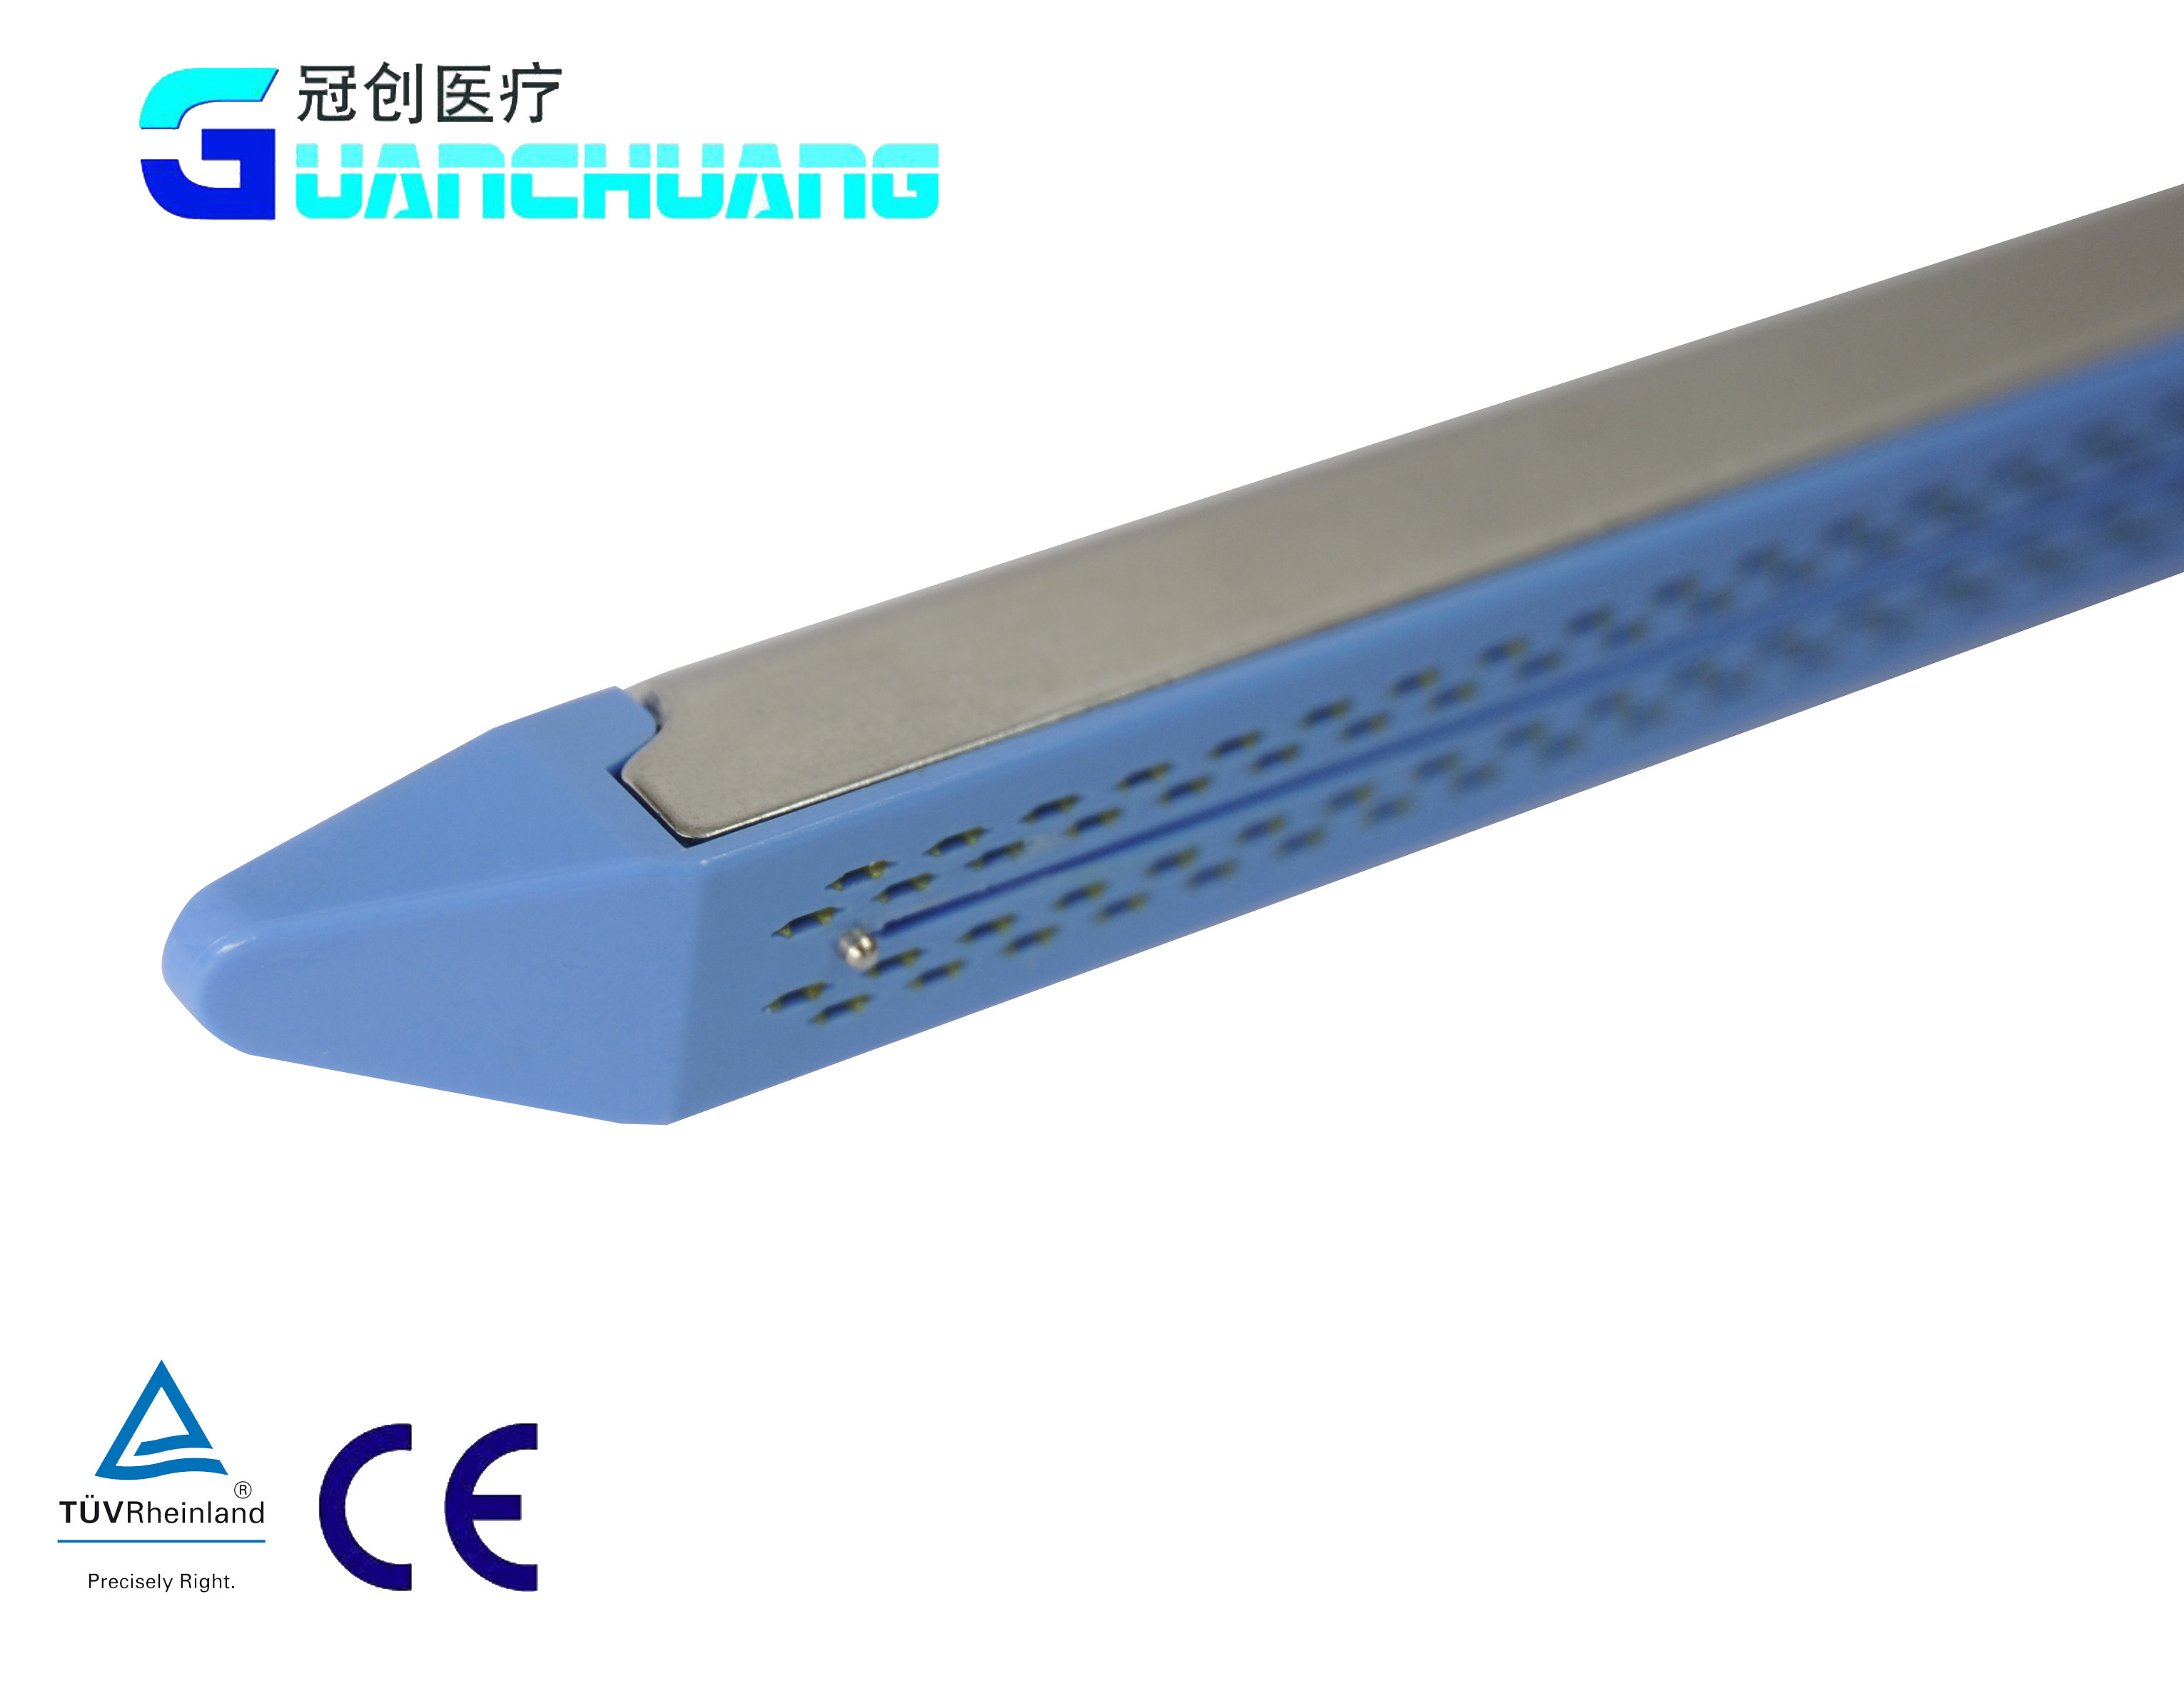 Disposable Linear Cutter Stapler and Reload